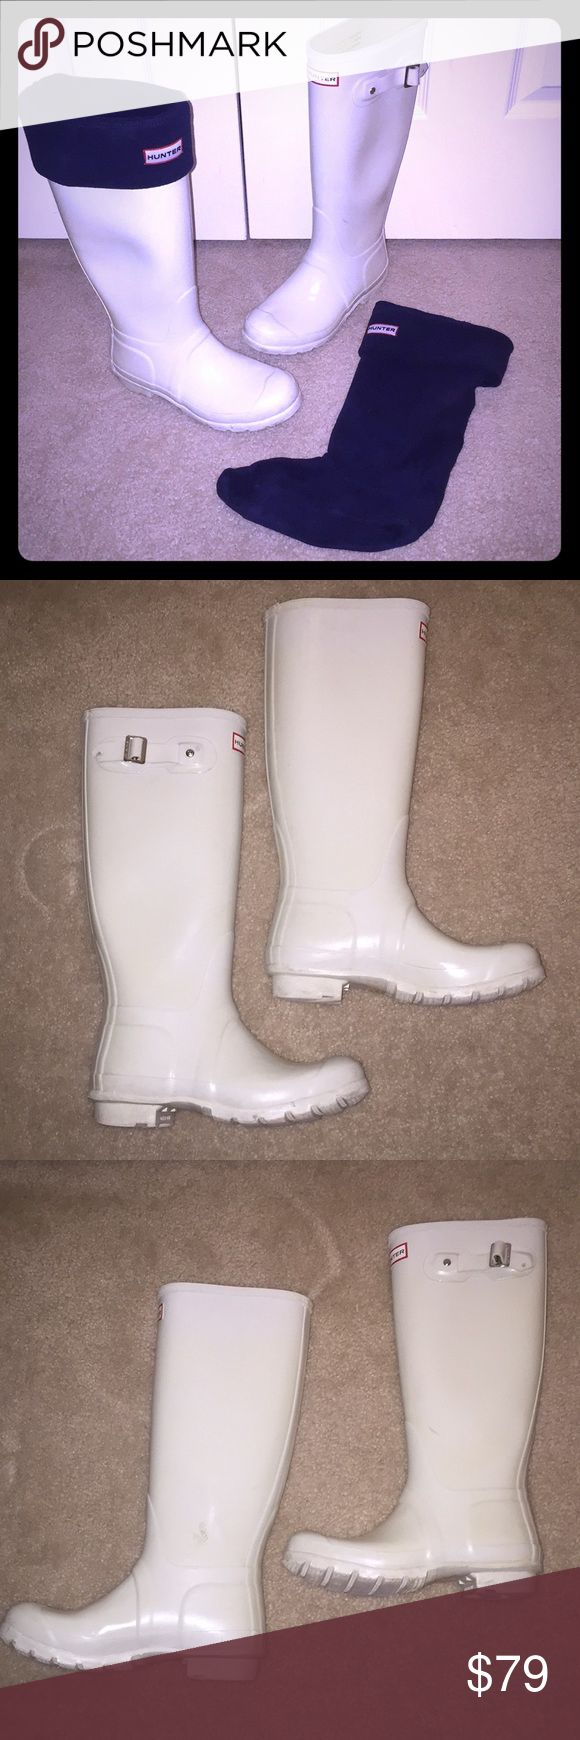 Hunter Tall Rainboots with Insert Socks! Great pair of white Hunter Original Tall Wellington Rainboots Womens size 6. These boots are used and have a couple of scuffs (please see pictures). No rips, tears, holes or leaks. Great pair of boots. I am also including the navy blue sock inserts (size 5-7 in Womens) that fits these boots. Hunter Boots Shoes Winter & Rain Boots